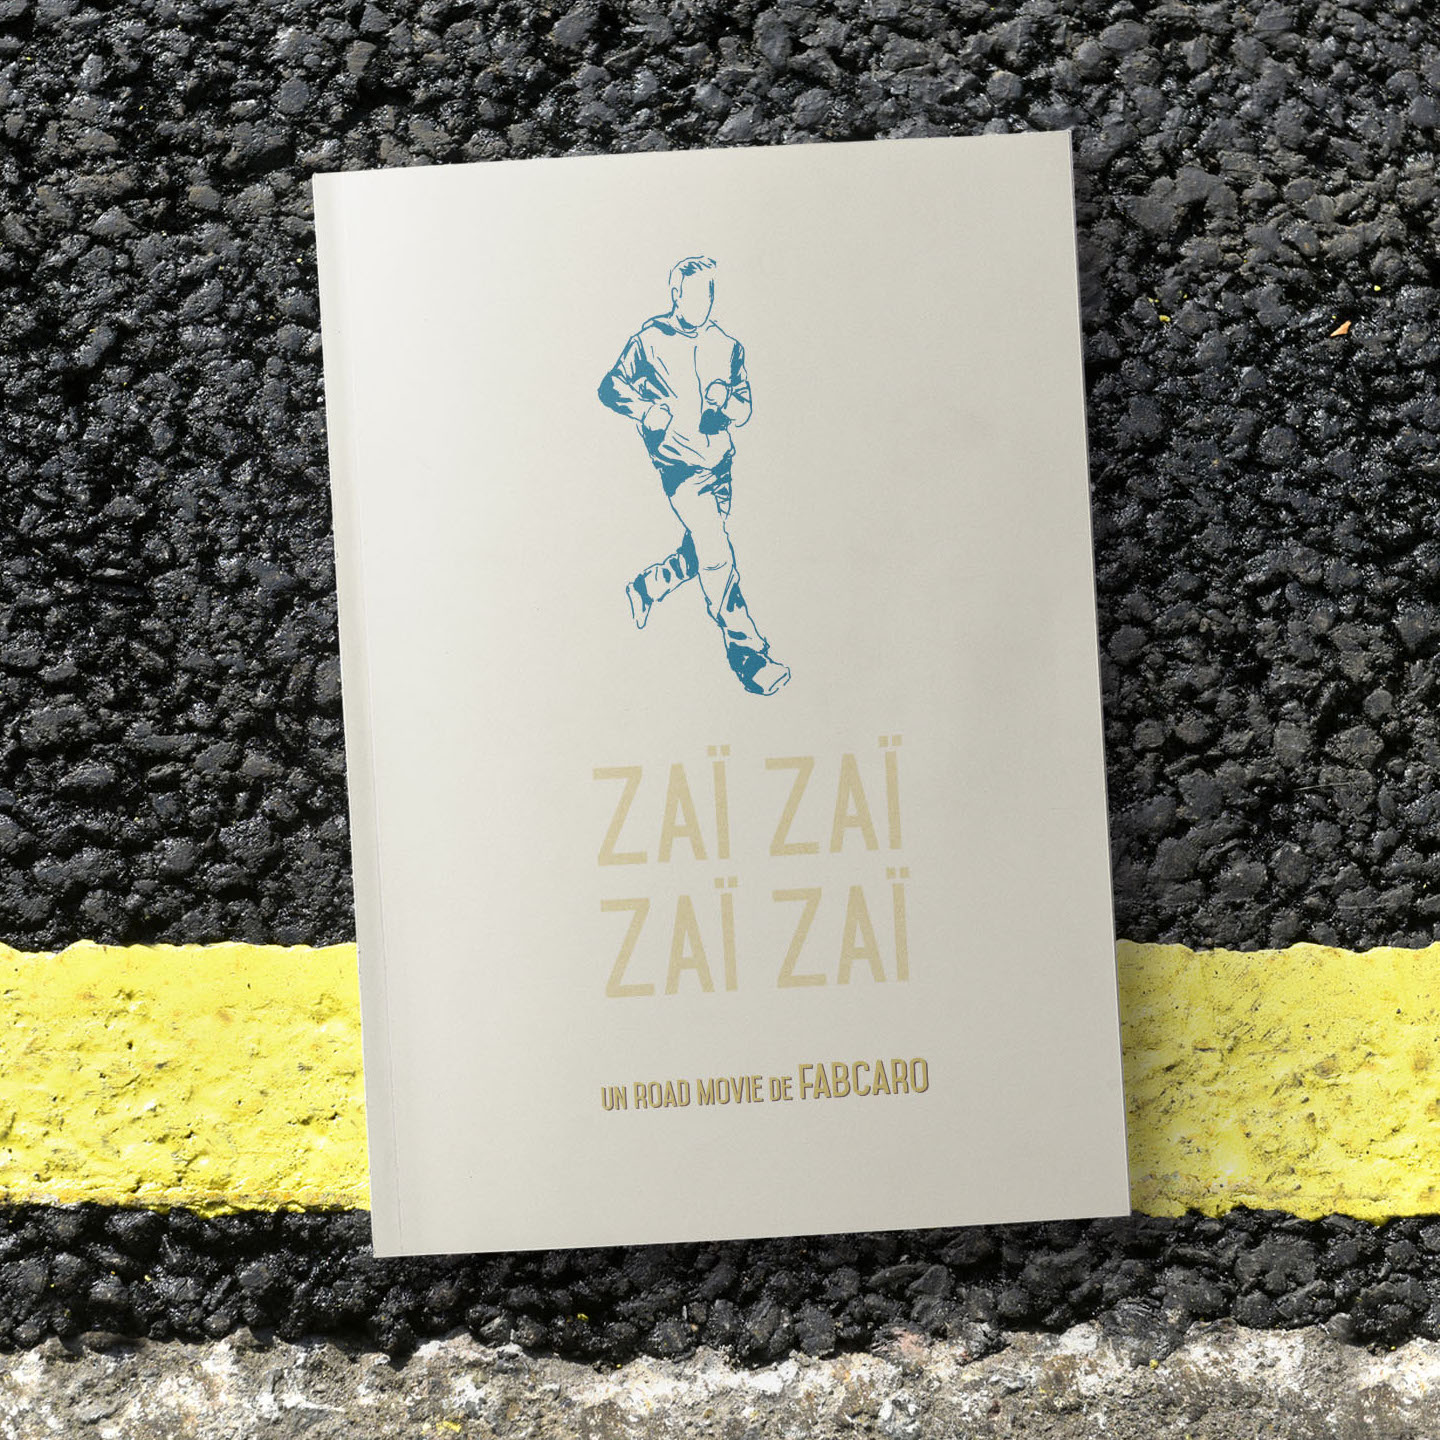 Title:  Zaï Zaï Zaï Zaï, a Road Movie   Author: Fabcaro  Year of publication: 2016  Pages: 72  Publisher: 6 Pieds Sous Terre (France)  Format/Print: 16.7x22.5cm/Duotone  World English rights available.